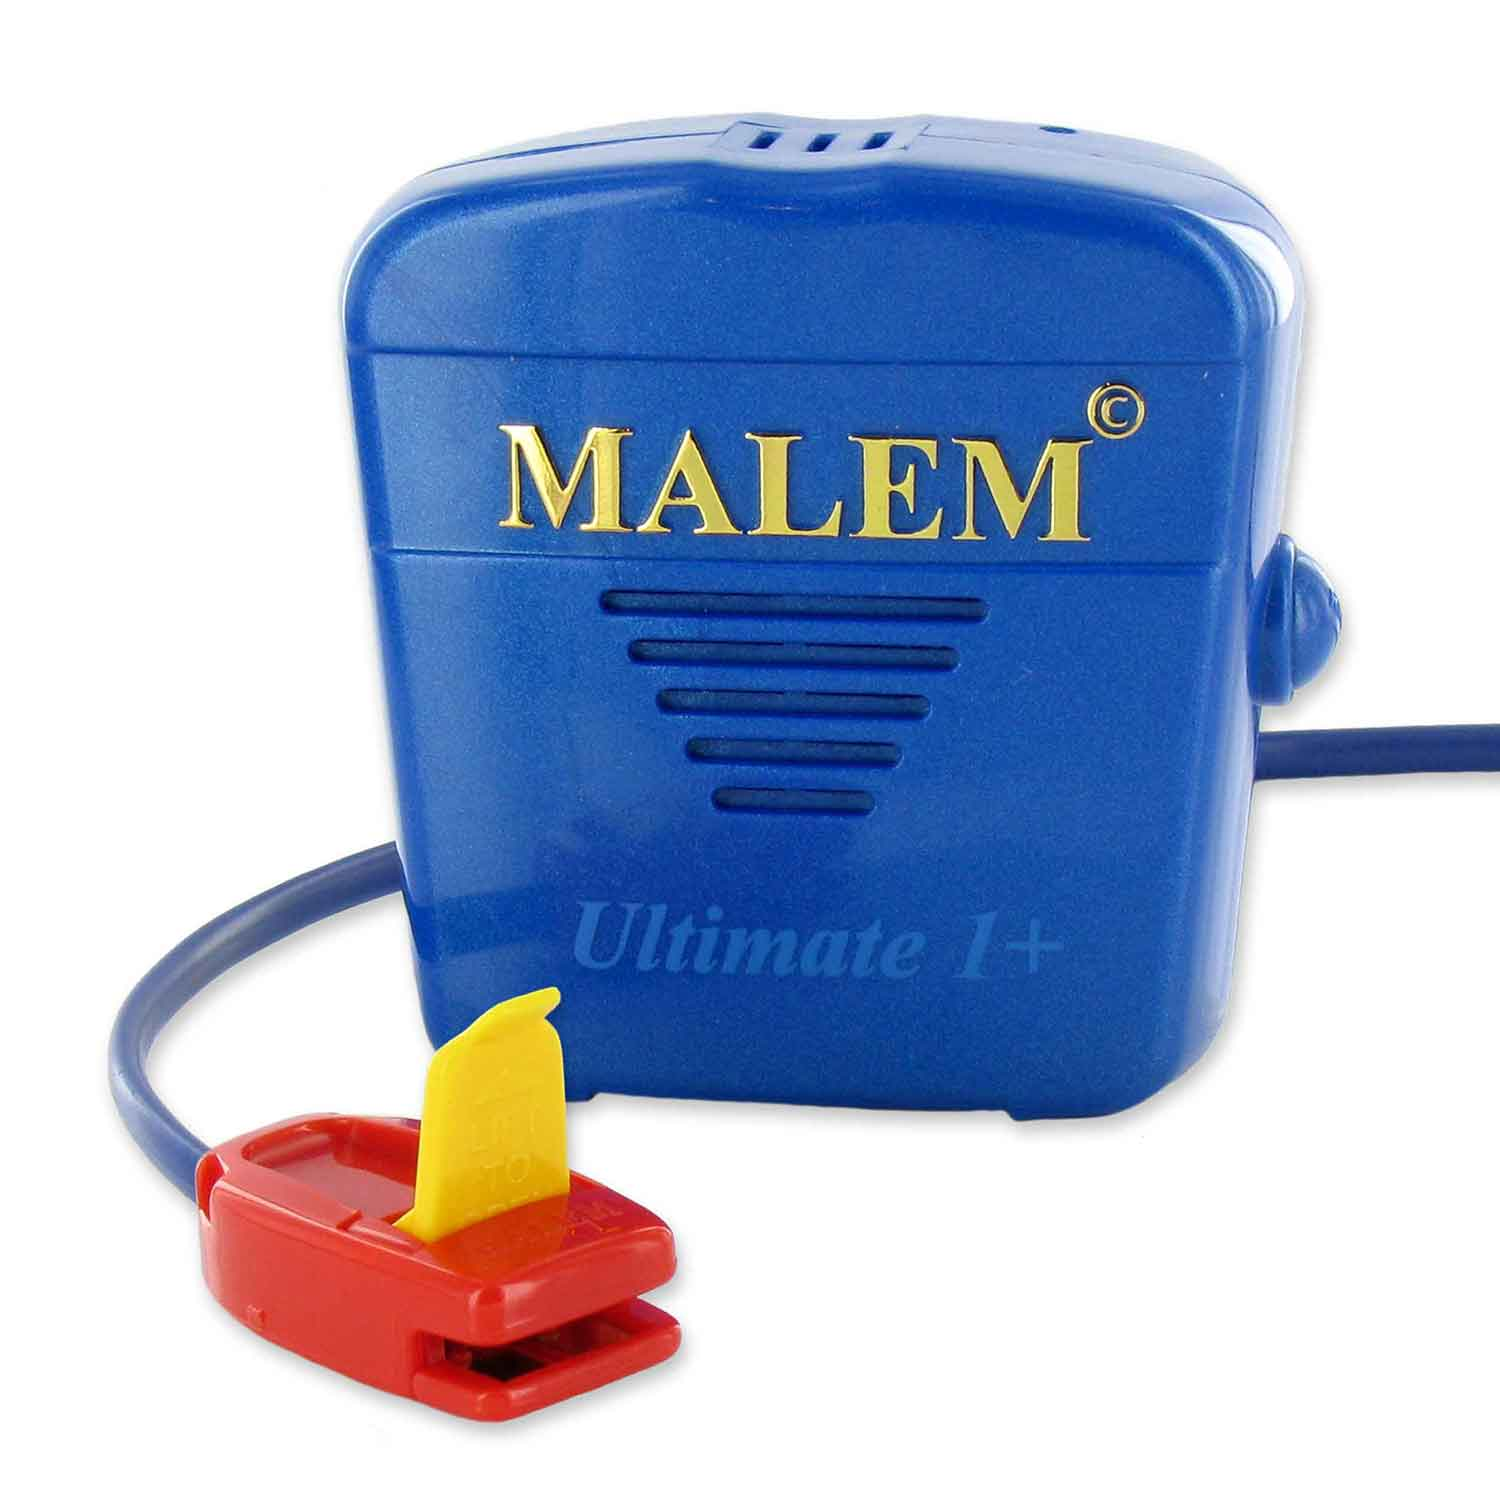 Alarms-Malem ULTIMATE Recordable Bedwetting Alarm